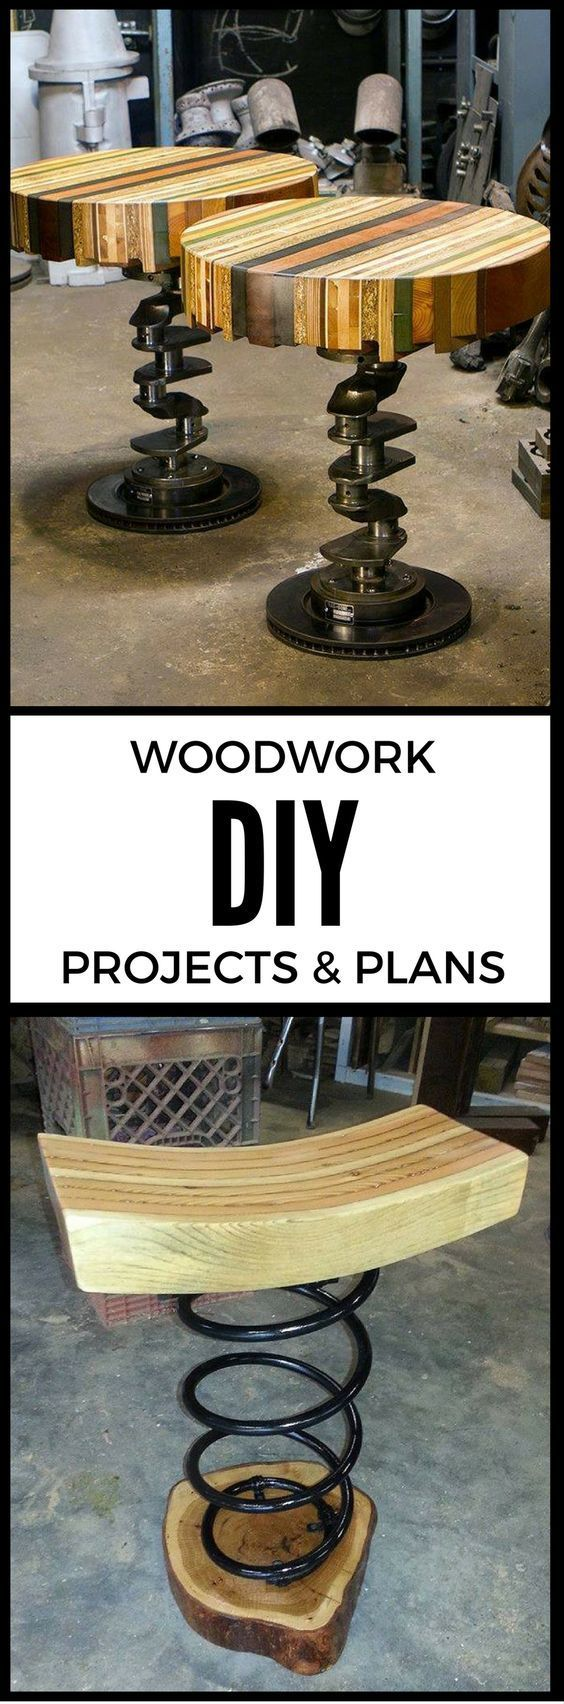 Woodworking plans projects and ideas httpvidagedcums diy woodworking projects do it yourself diy garage makeover ideas include storage organization shelves and project plans for cool new garage decor solutioingenieria Image collections